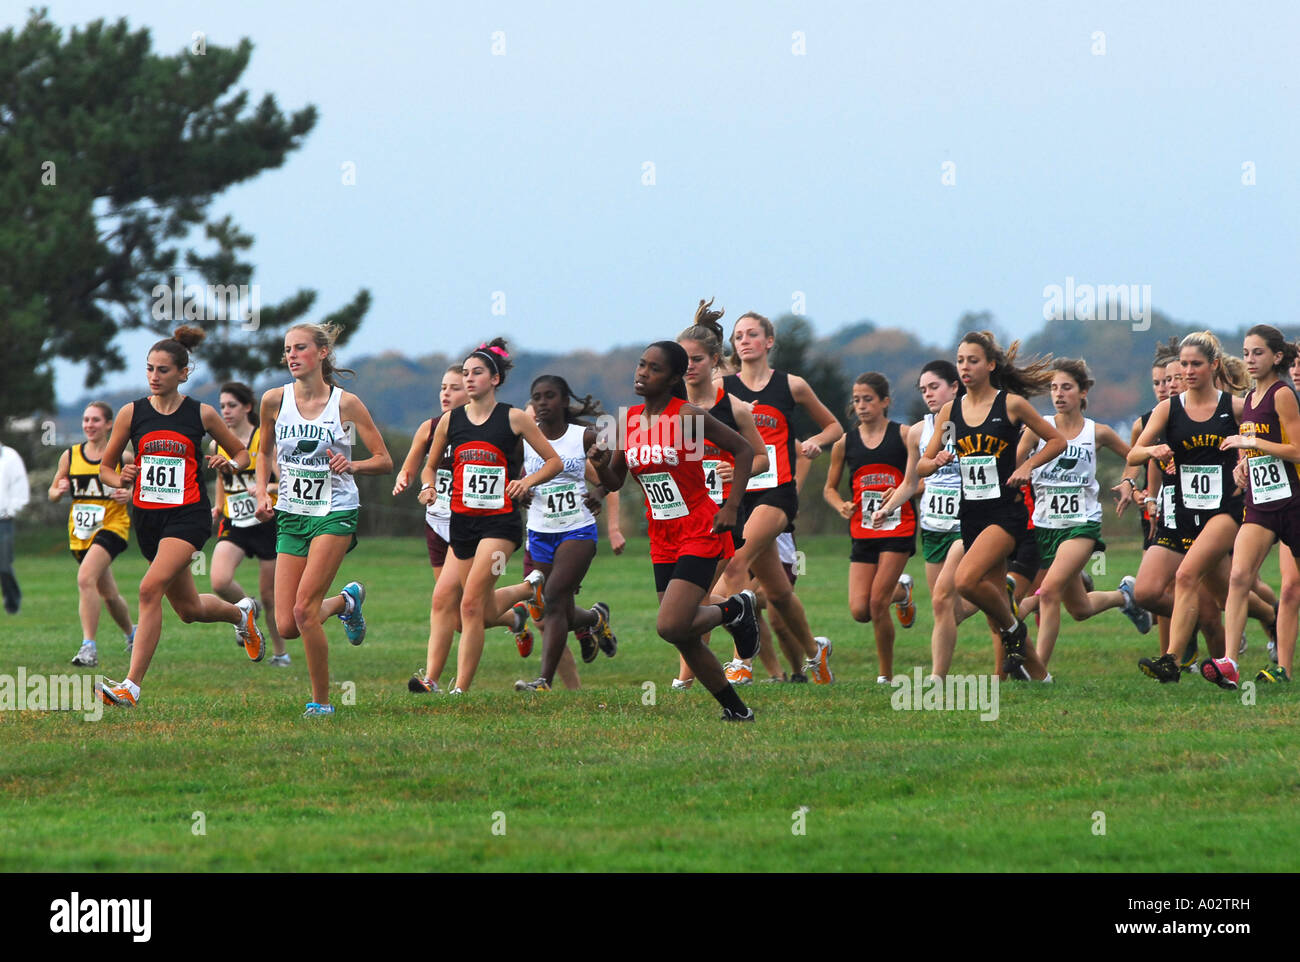 A Pack of female Runners at a High School Cross Country Meet - Stock Image